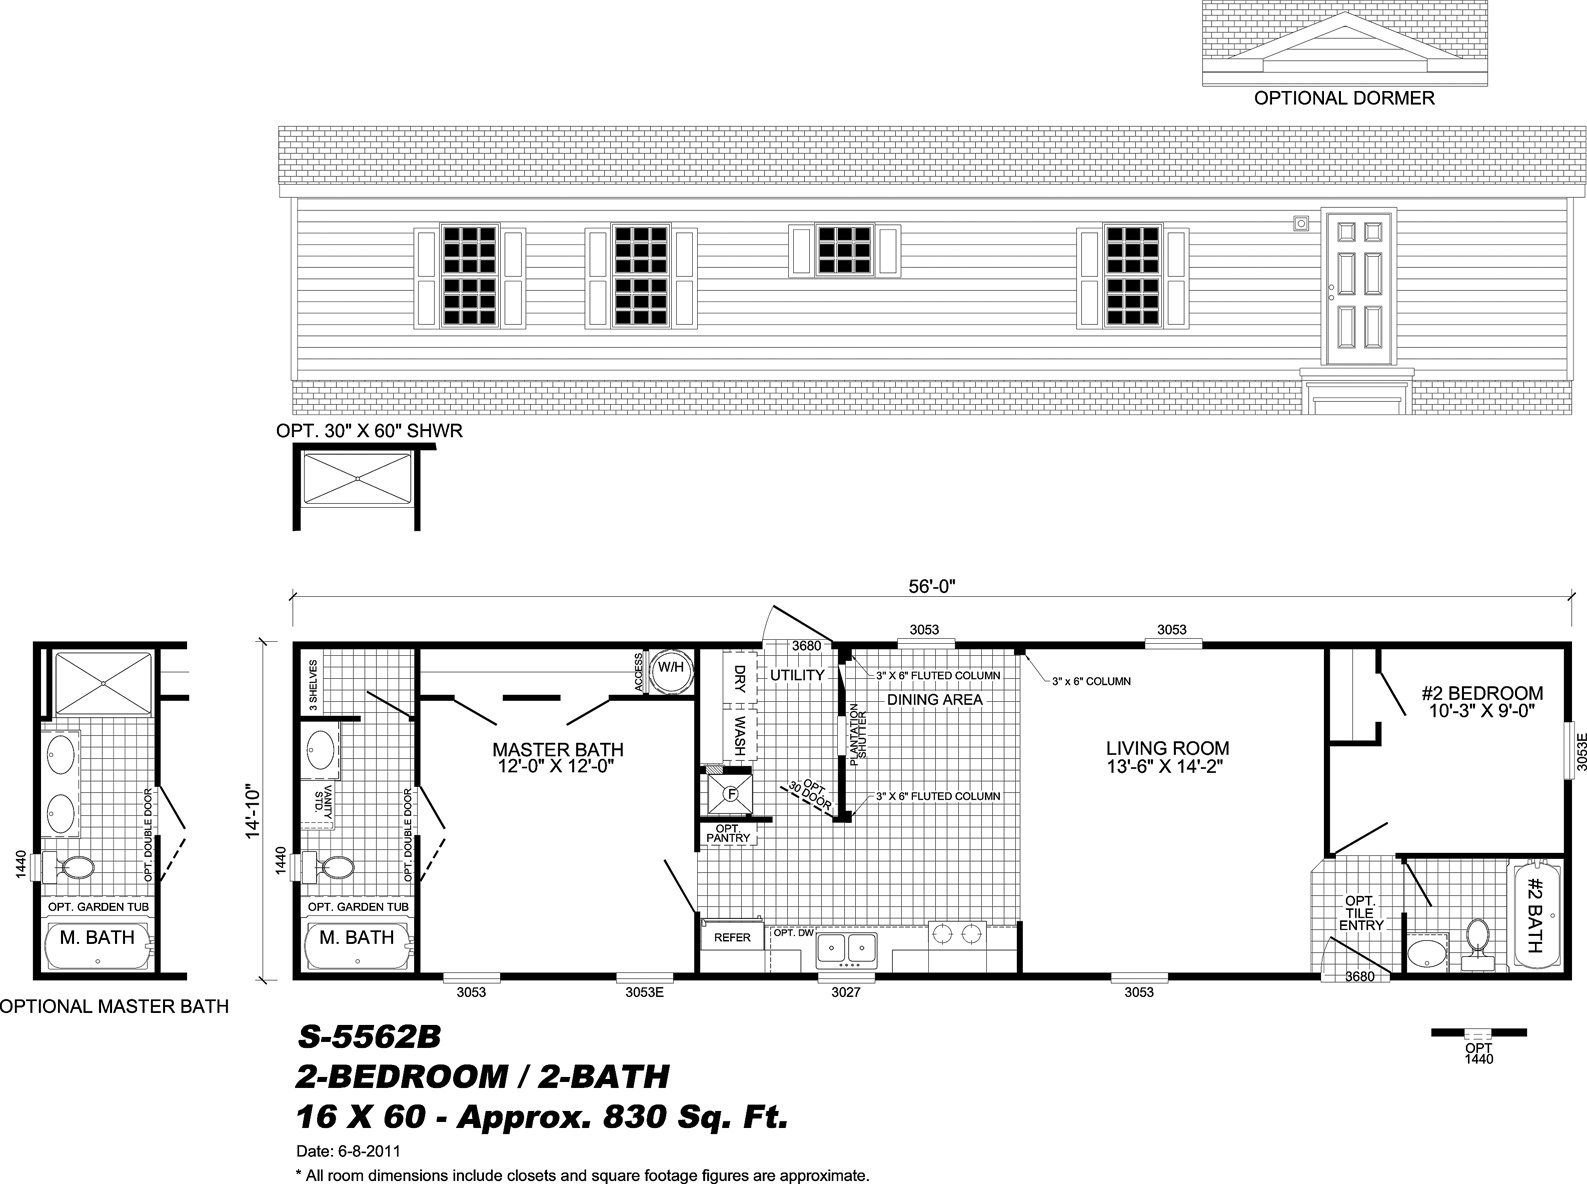 Rainbow homes augusta ga single wide manufactured homes for Bath remodel augusta ga